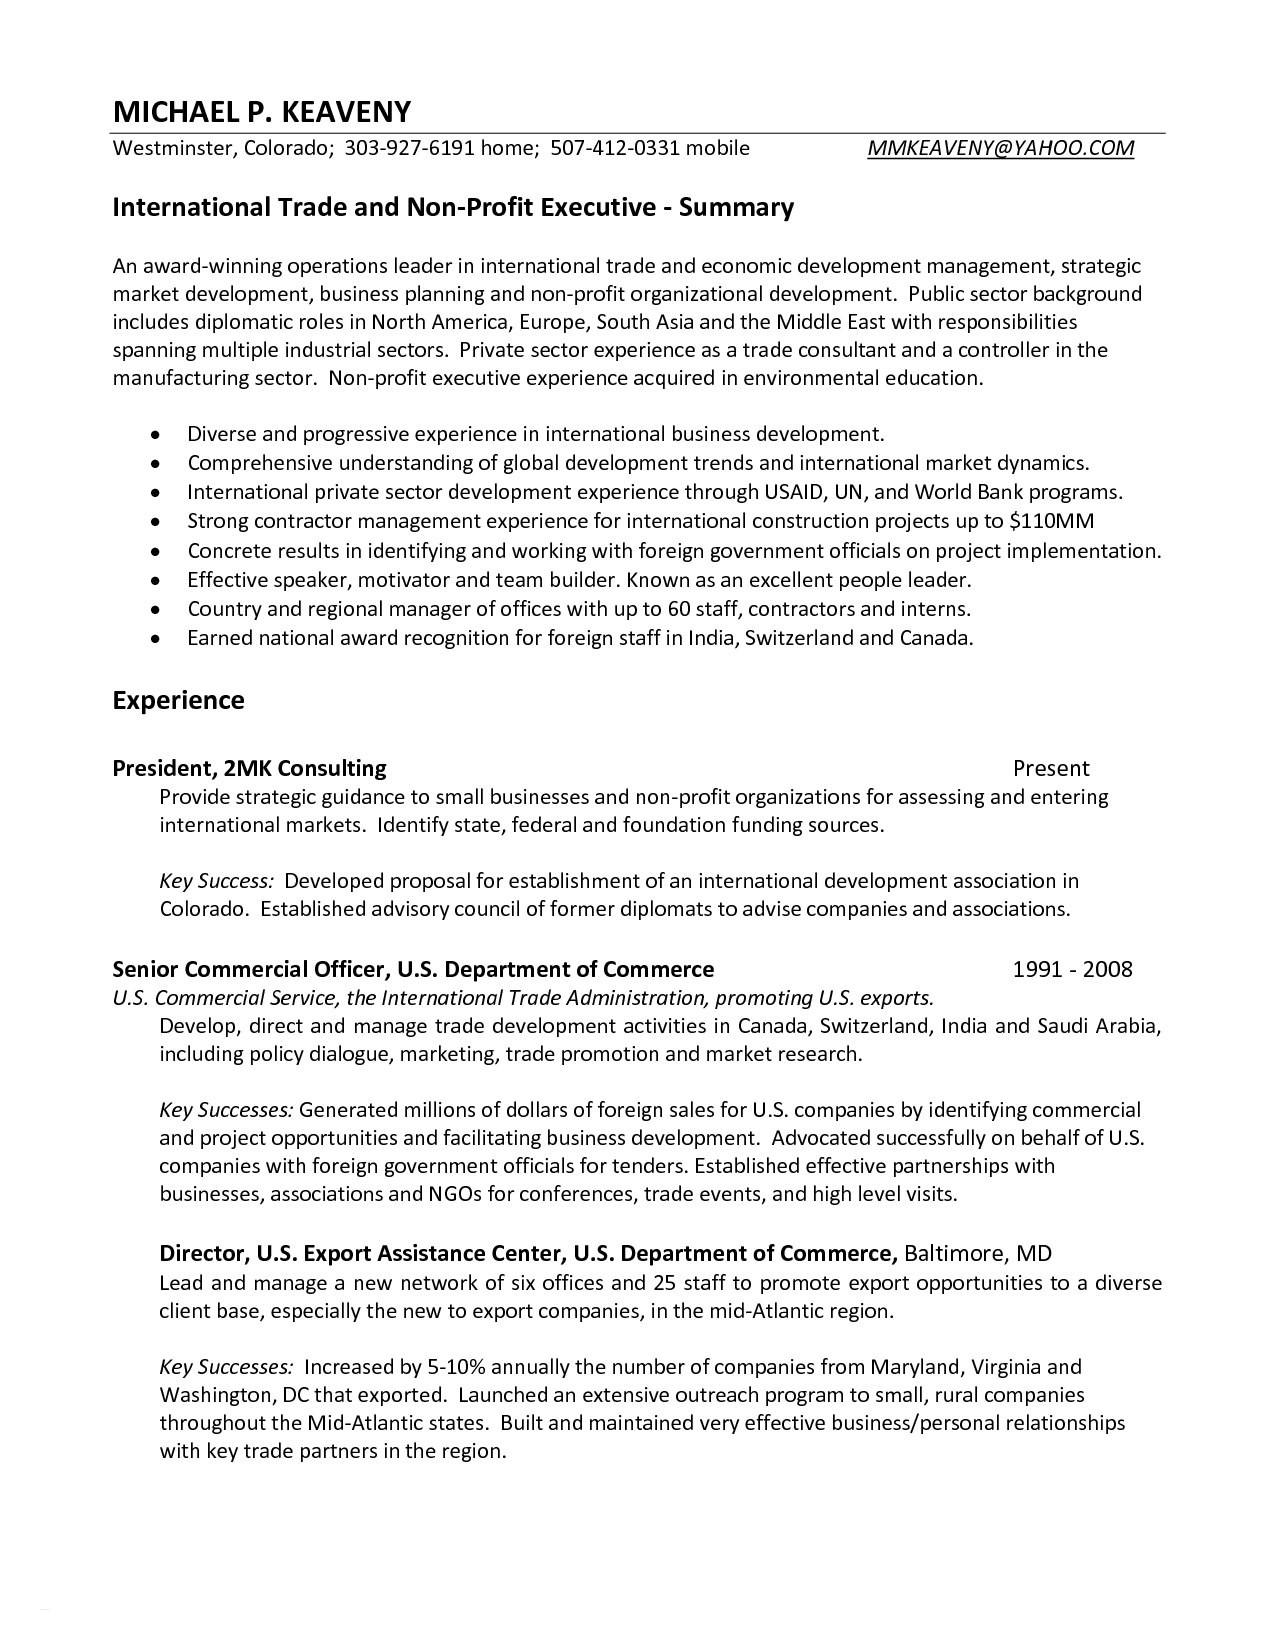 Caregiver Summary for Resume - Best Resume Template for Caregiver Position